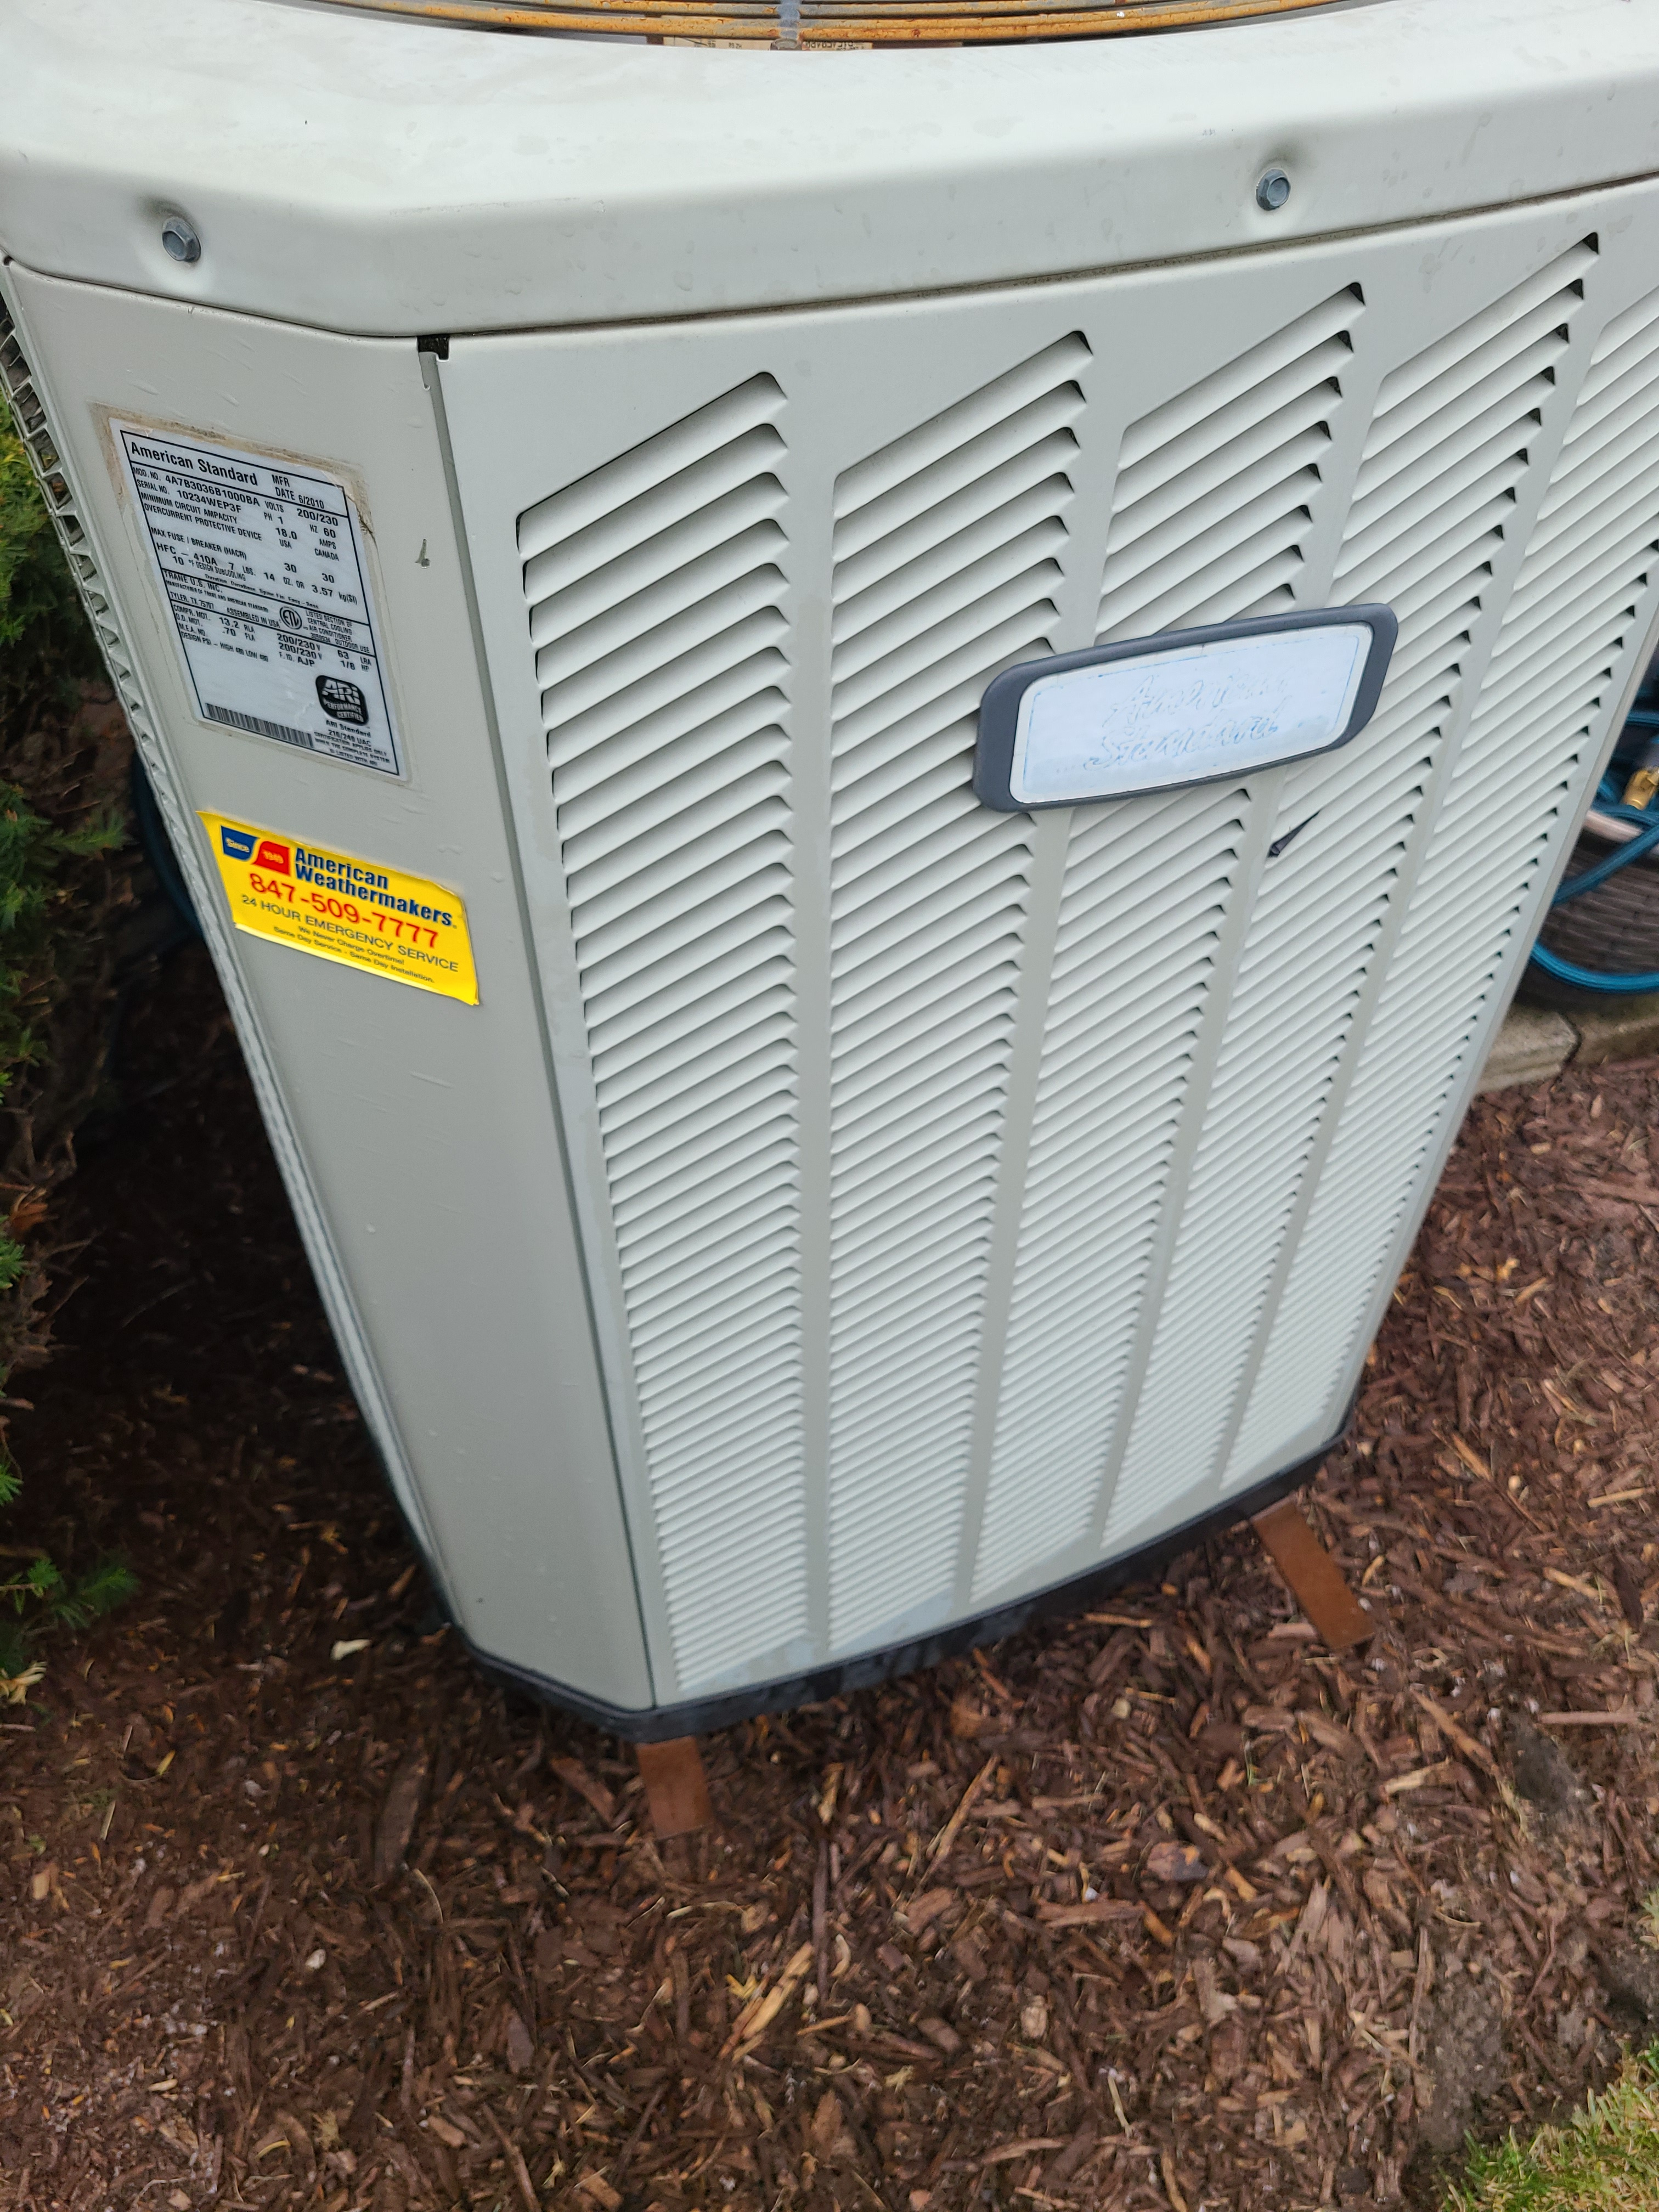 Performed preventative maintenance on an American Standard R410A system to extend the life of the unit. Checked voltage, amperage, temperatures, pressures, and microfarads. Washed condenser coil thoroughly.